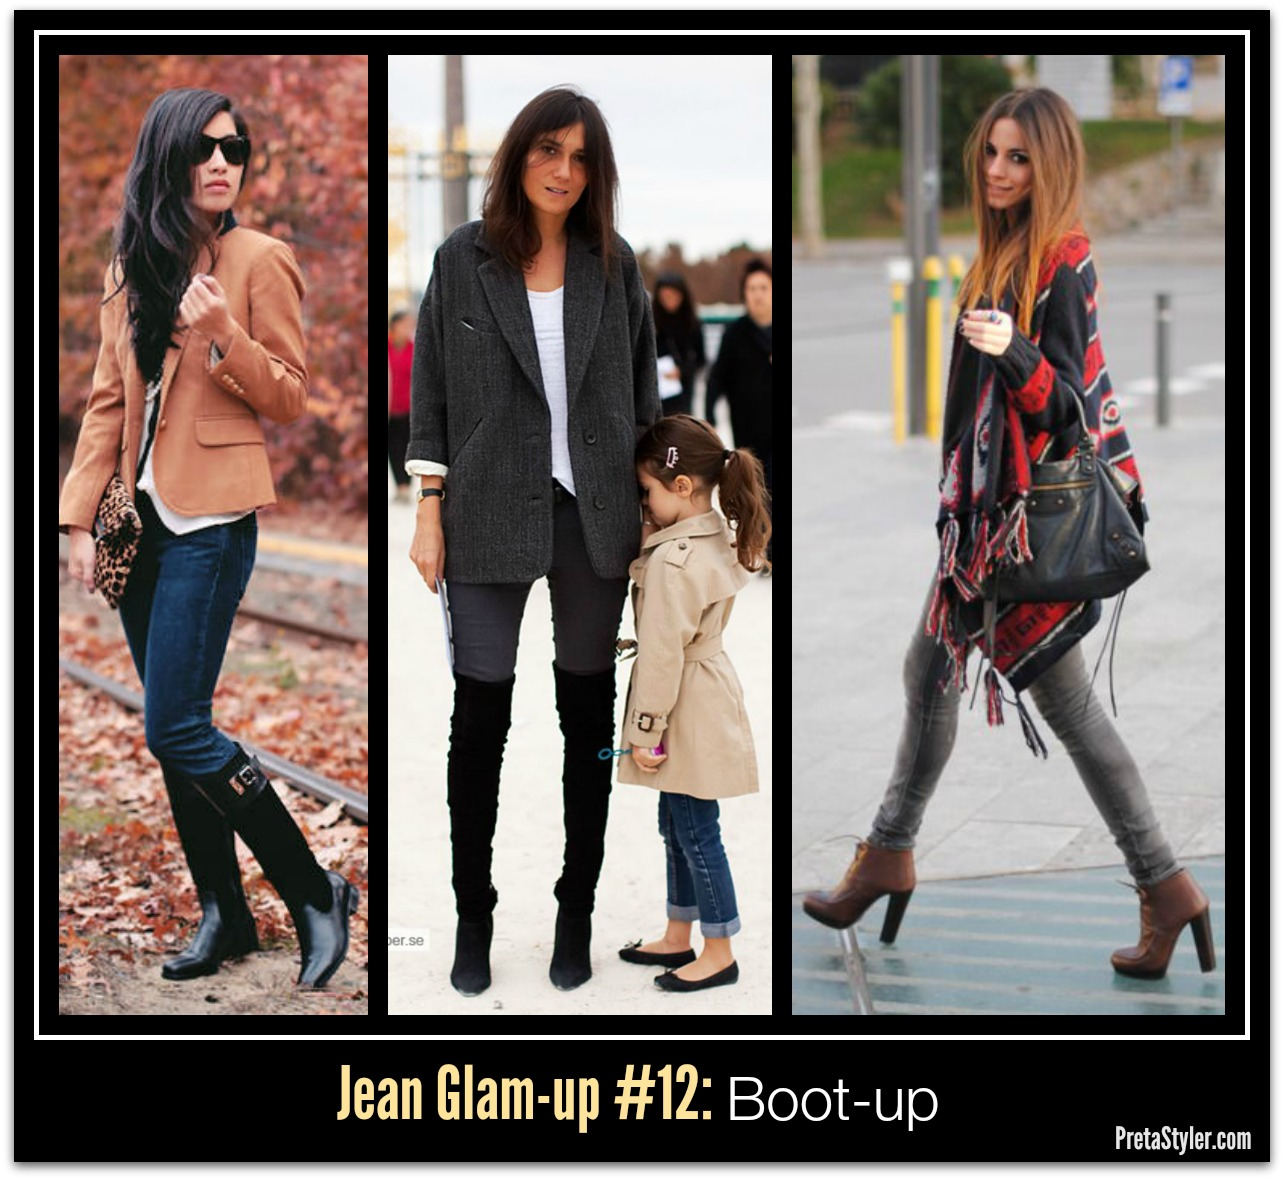 How to Glam-up Blue Jeans #12